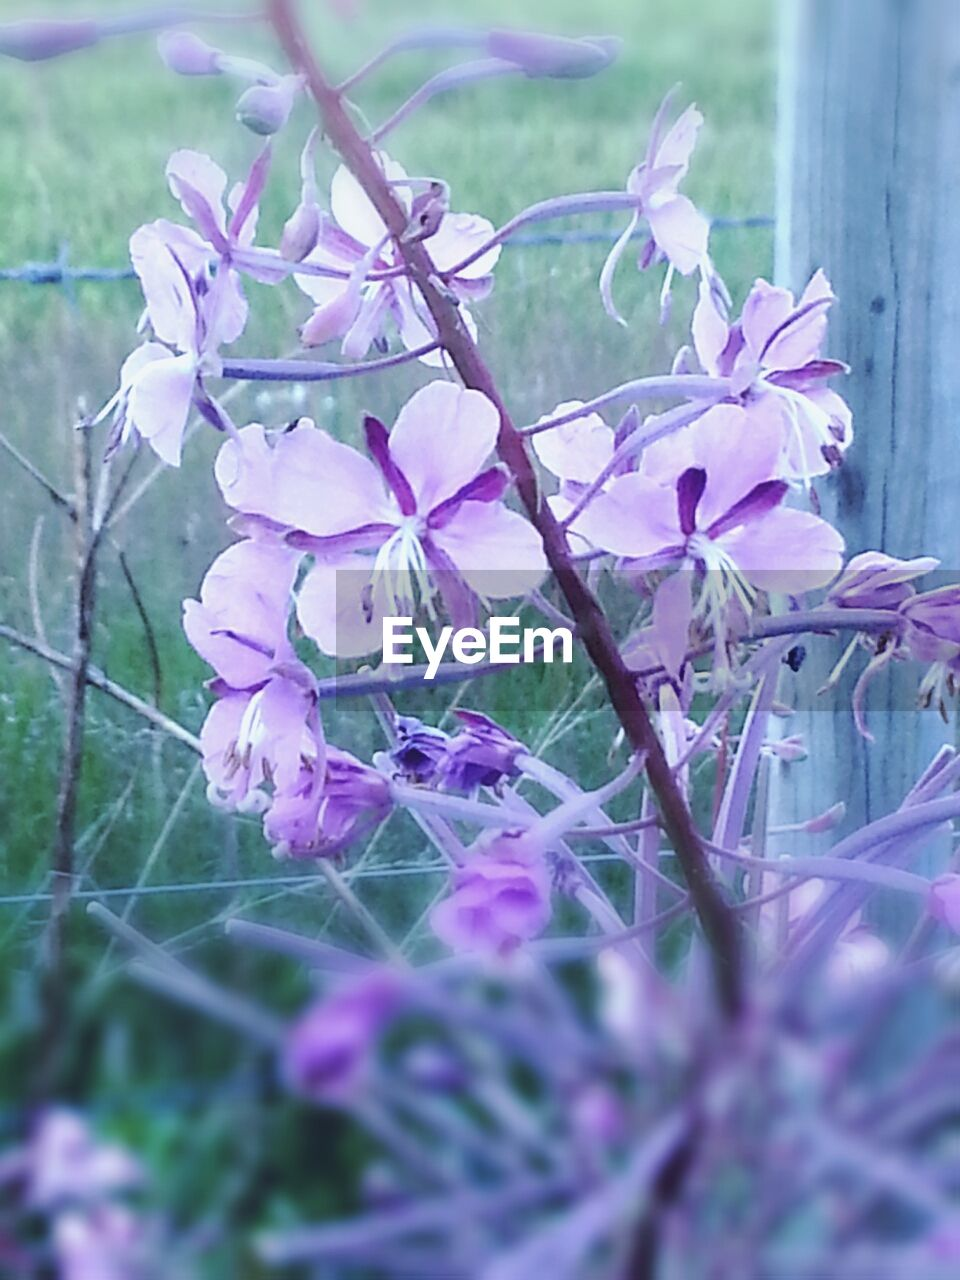 flower, beauty in nature, nature, growth, fragility, purple, no people, day, outdoors, petal, plant, close-up, freshness, branch, tree, flower head